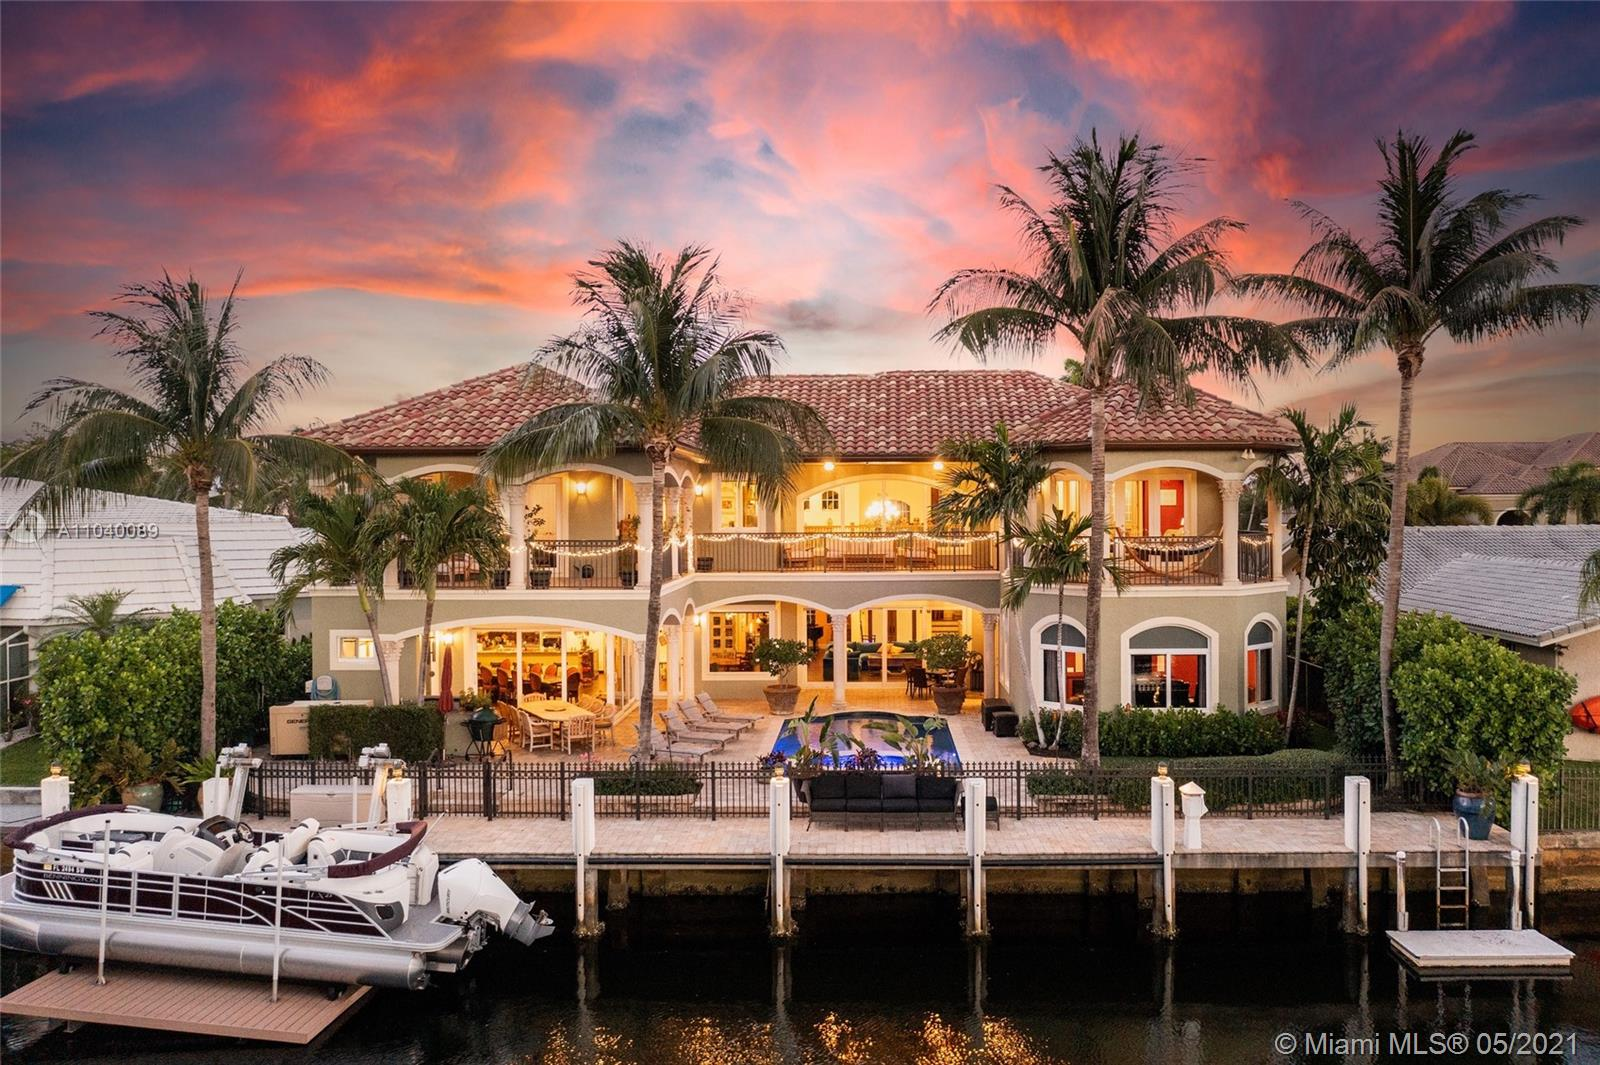 Welcome Home to Your Palatial Waterfront Estate in sought after, The Landings. Enjoy 85' on a 140' wide canal with ocean access, no fixed bridges & boat lift. Experience the Ft.Lauderdale lifestyle with indoor / outdoor living provided by wall to wall hurricane impact sliders, pool, summer kitchen, sprawling pavered veranda & 2nd floor wrap around terraces. This spectacular home features soaring ceilings where natural light abounds, gourmet kitchen, home theater, sauna, elevator, whole home generator, whole home water filtration system & laundry rooms on both floors. New flooring throughout, new bath suites, new tankless water heater & natural gas! Make this home your own.***Buyer's financing fell through, home appraised.***